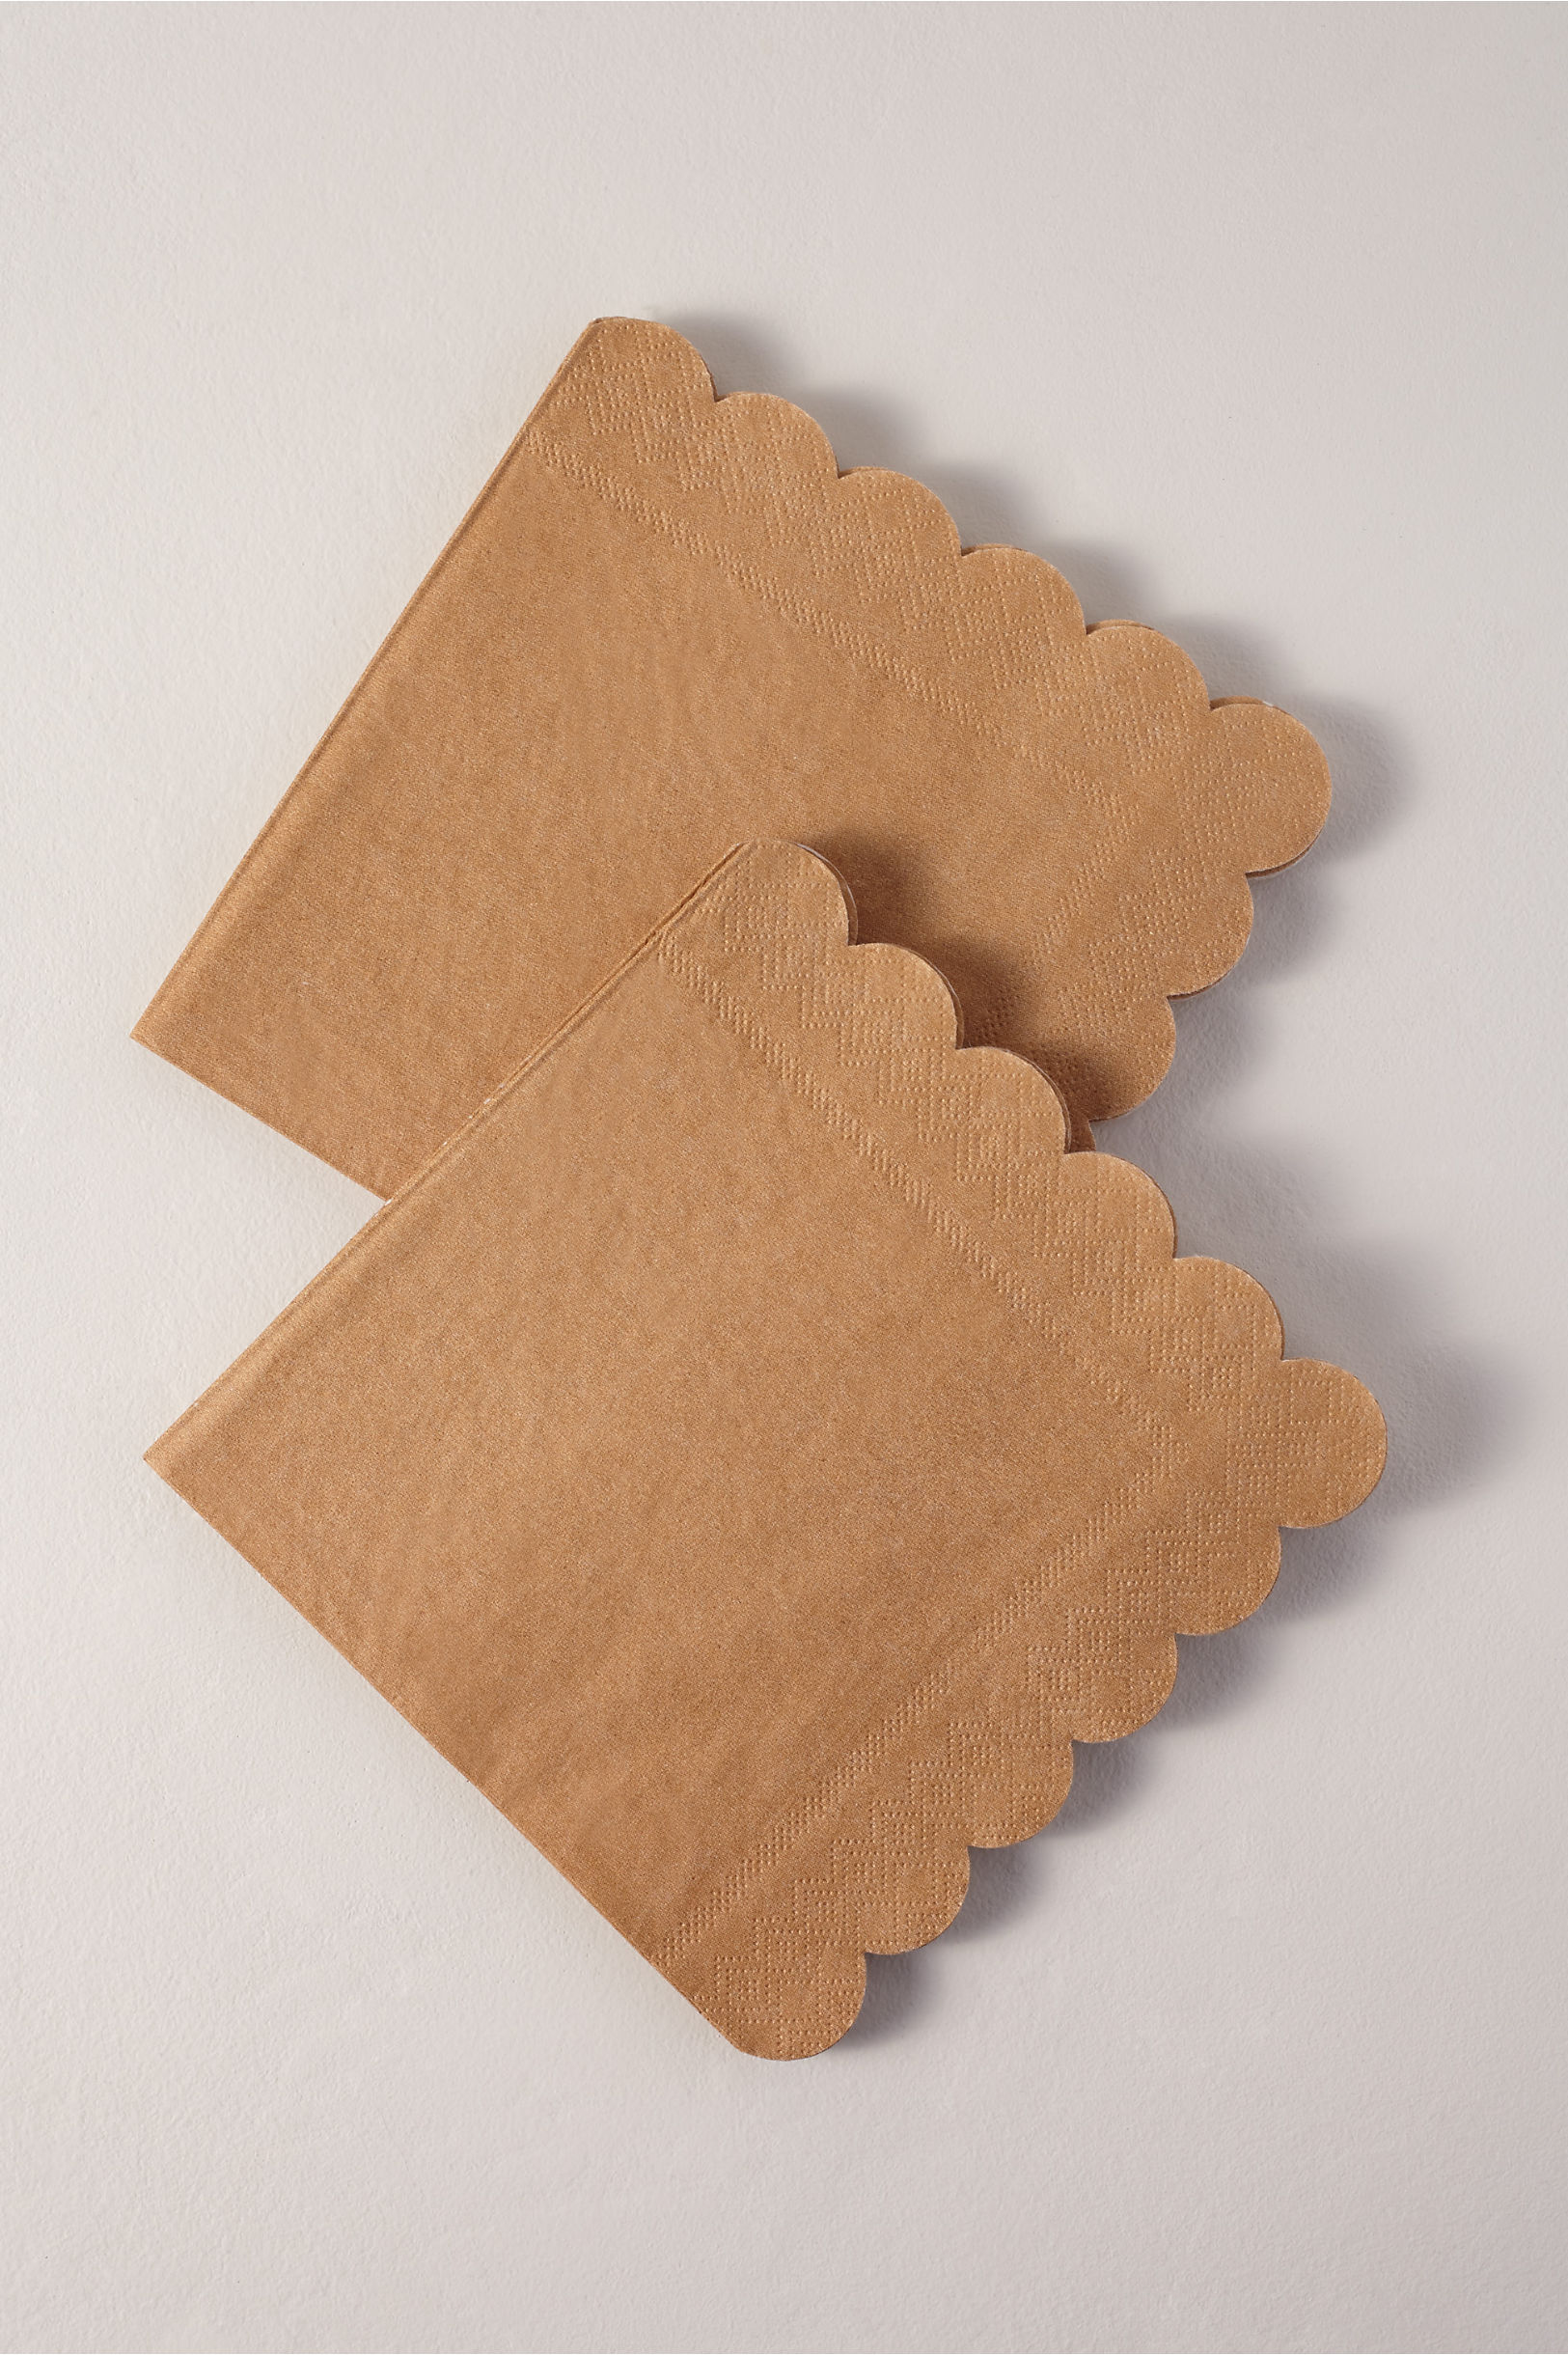 Scalloped Napkins